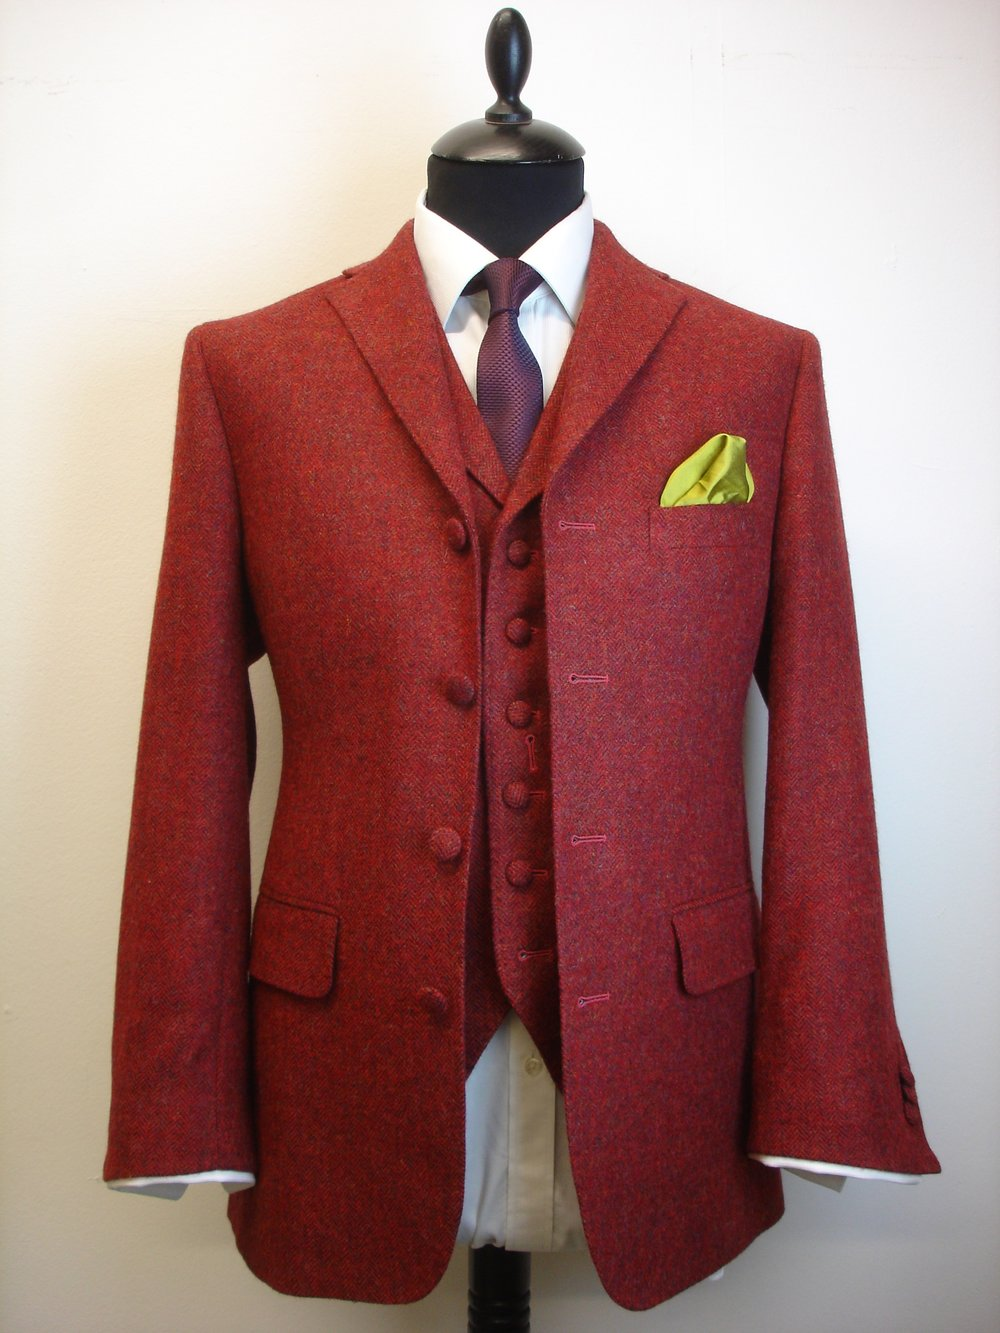 3 Piece Vintage Style Tweed Suit In Raspberry Herringbone Tweed